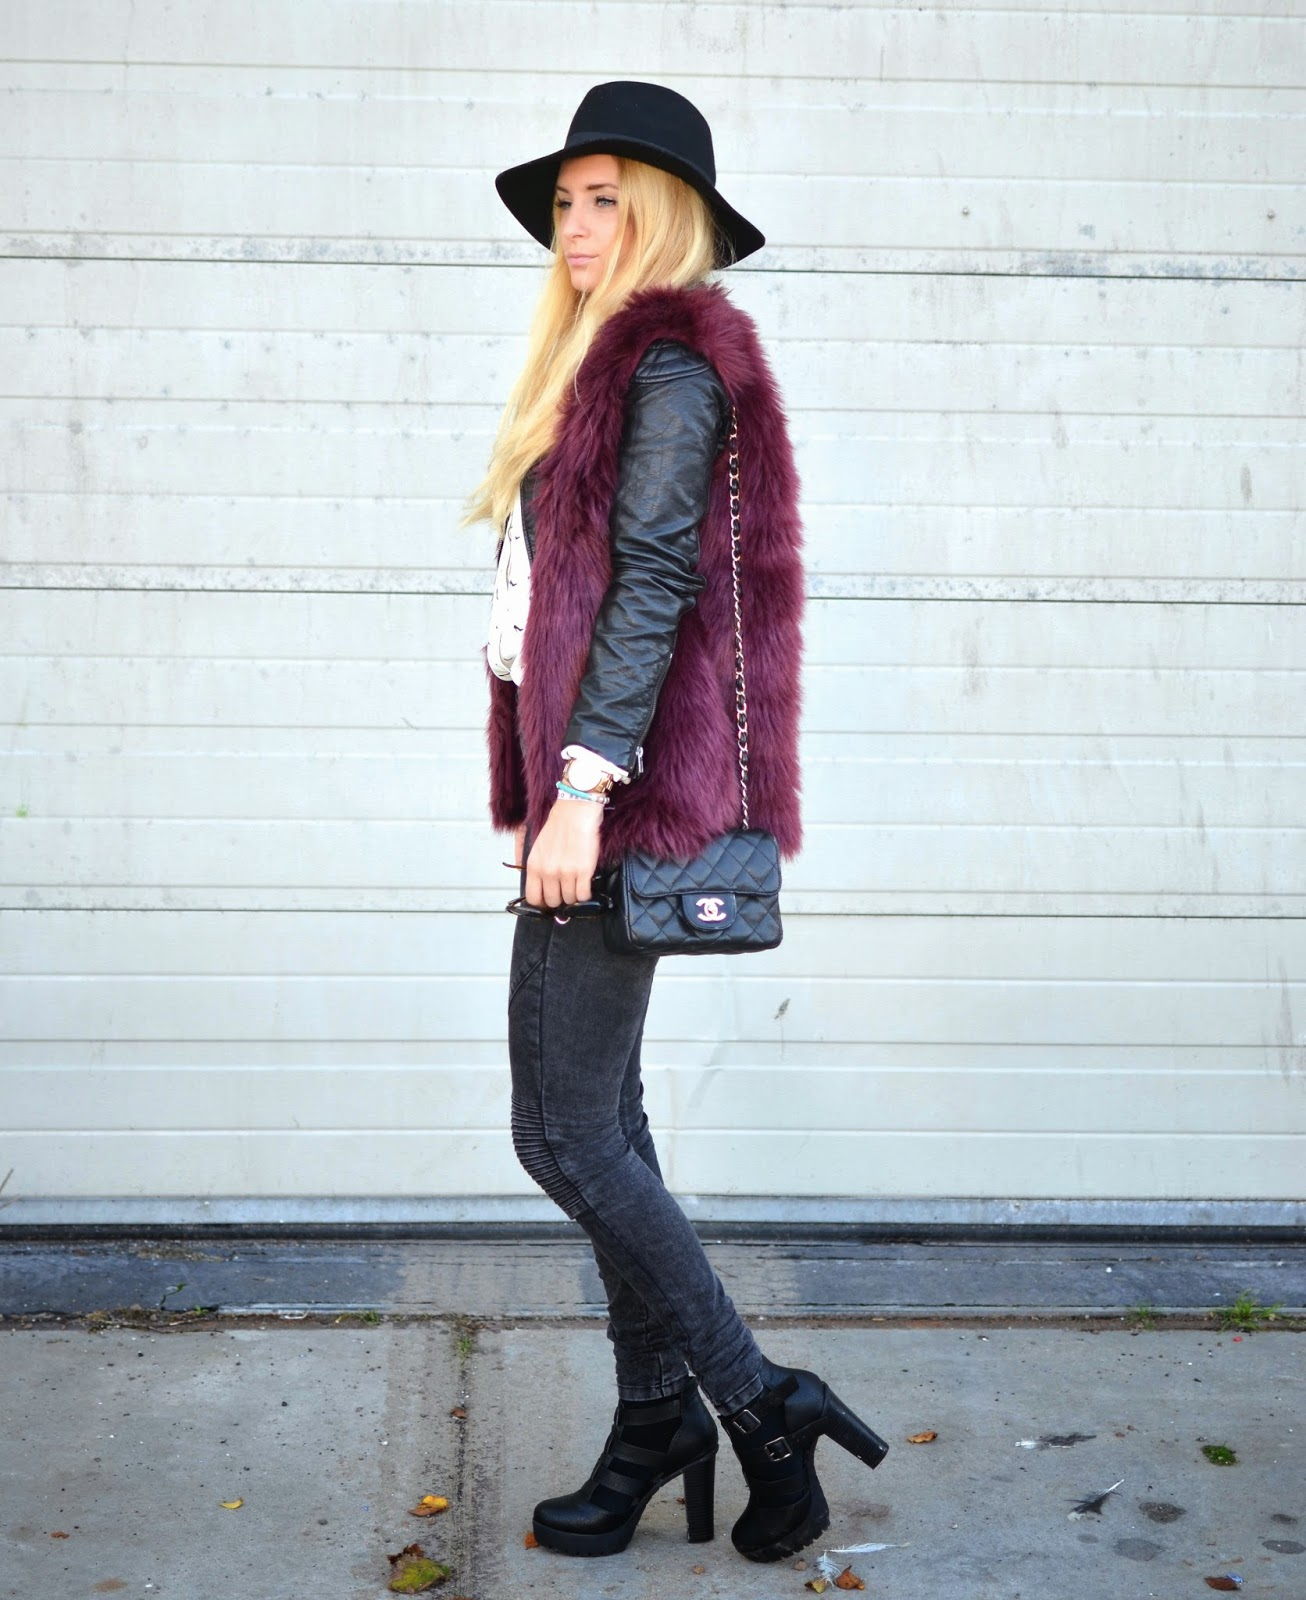 Charlotte Schouten is wearing a burgundy faux fur vest from Seven Sisters